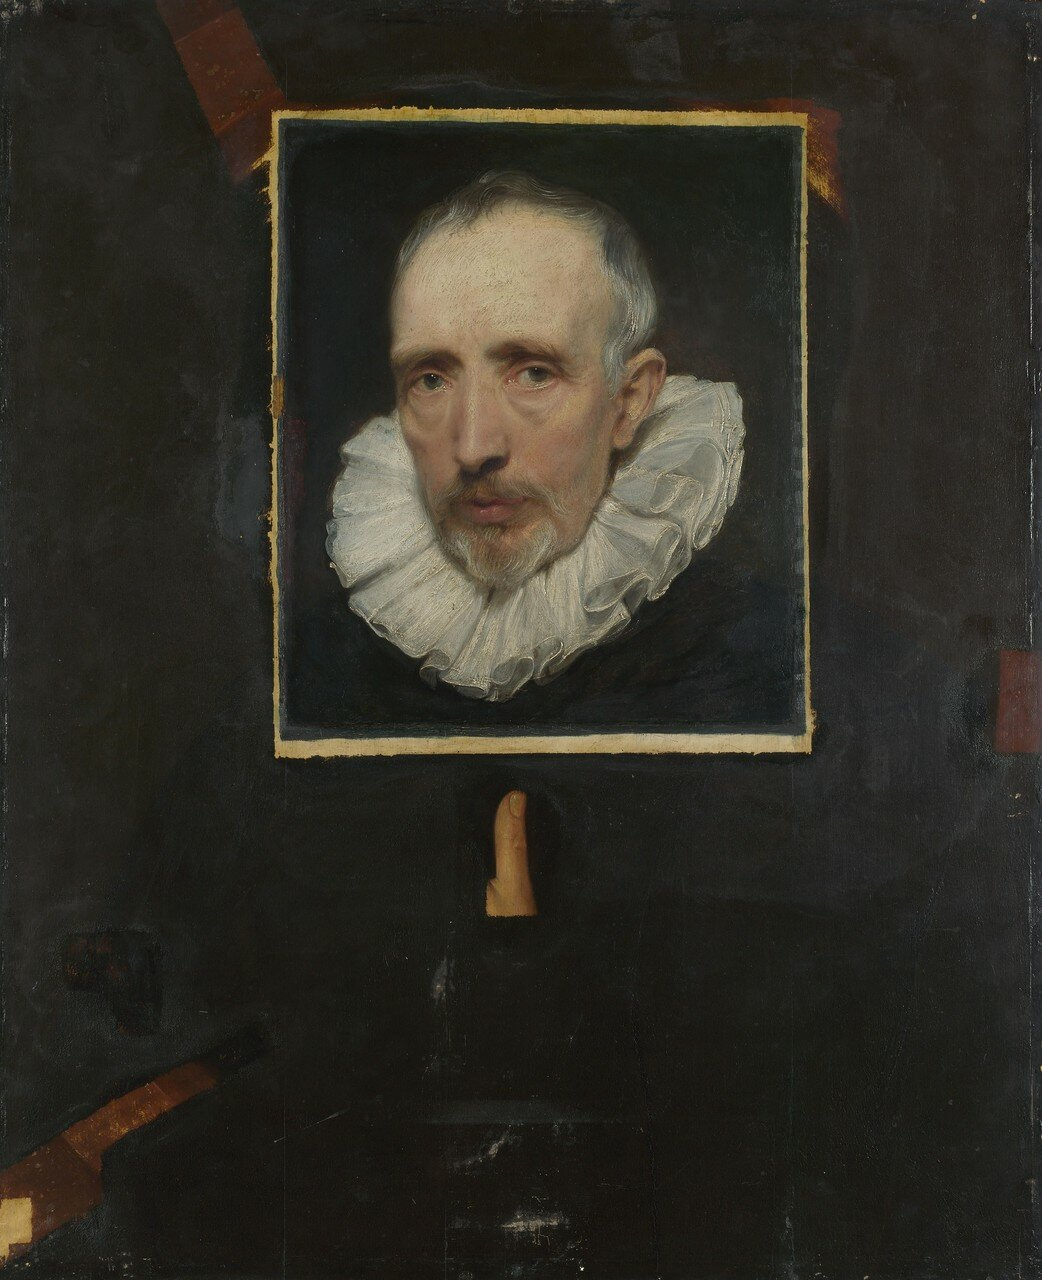 about 1620